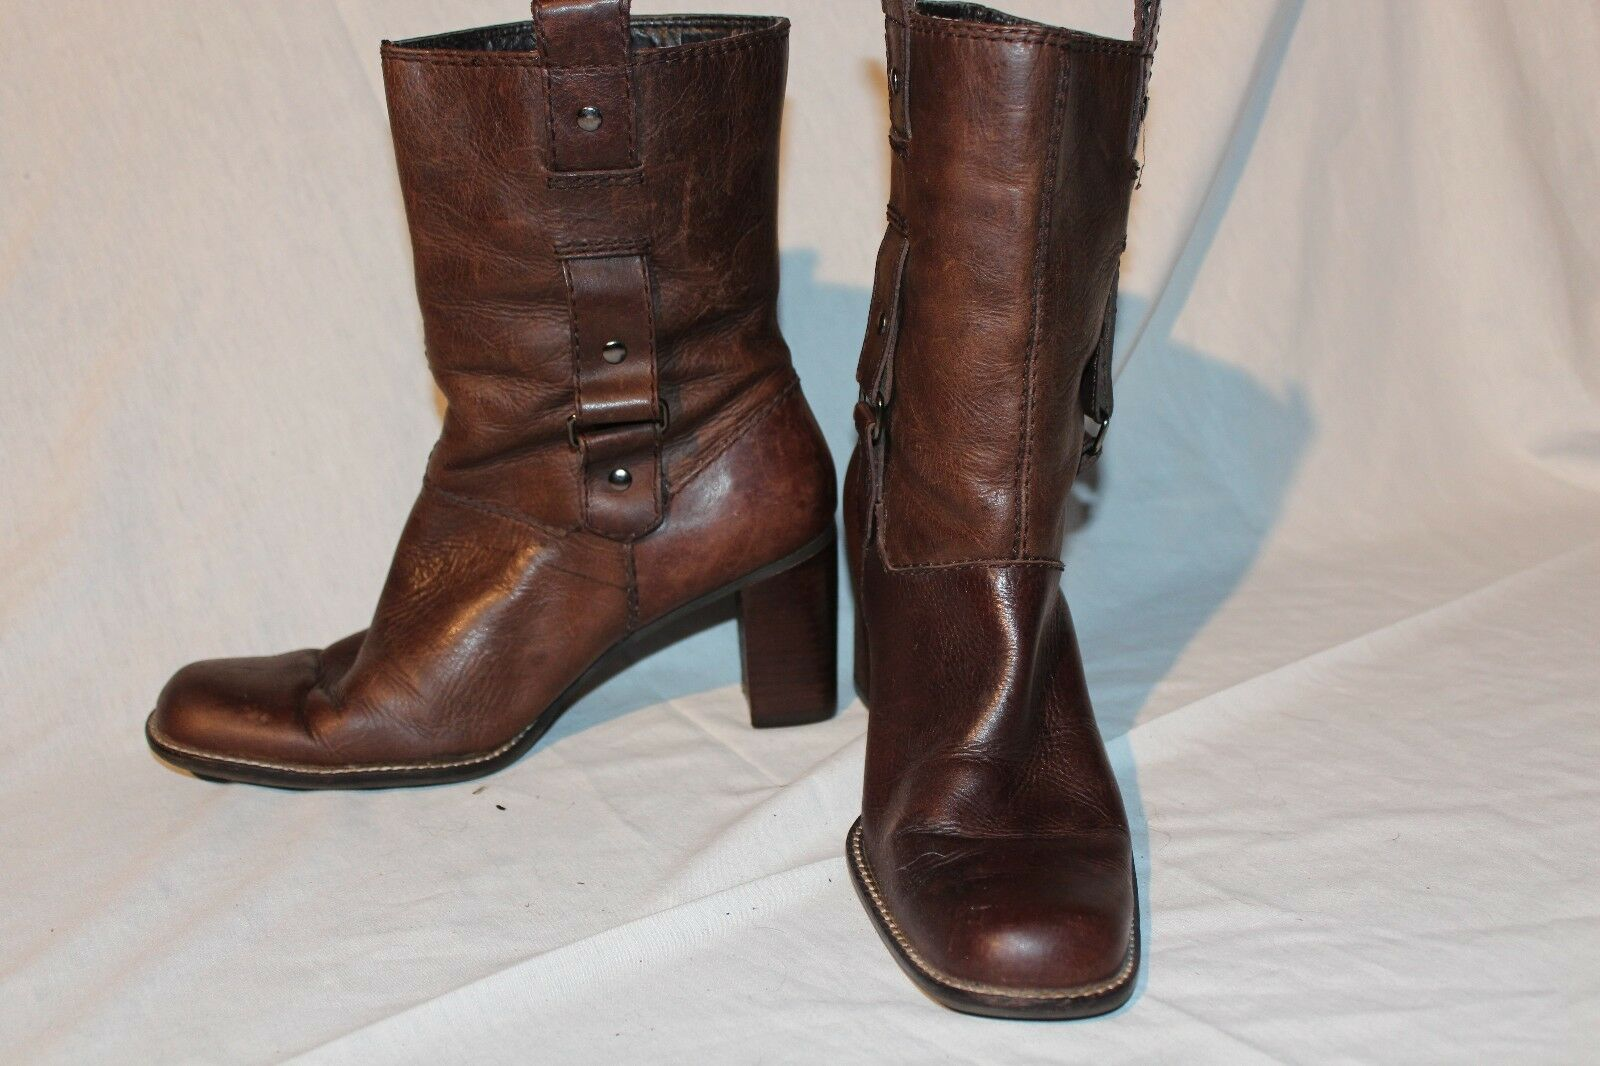 What's What by Aerosoles Women's  Easy Rider  Short Boots Booties 7.5M